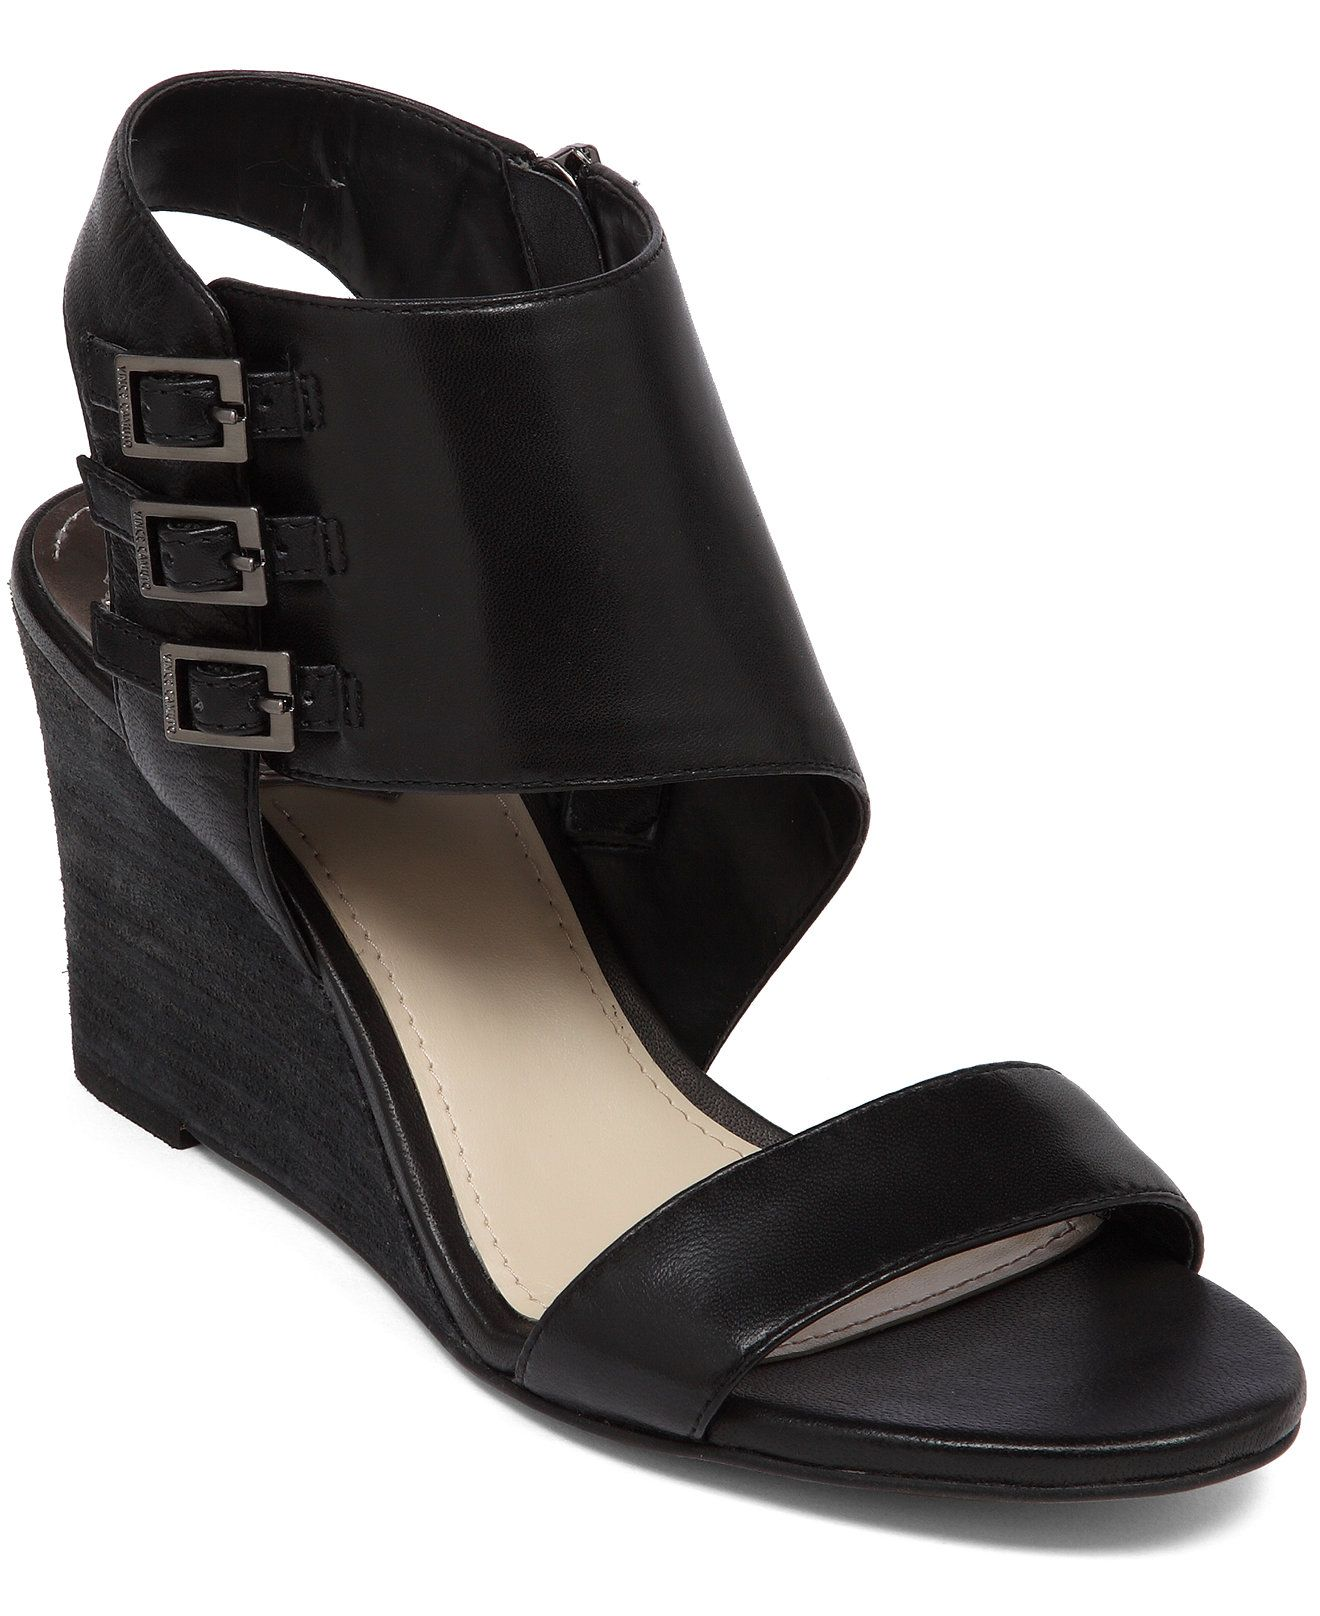 Vince Camuto Lyssia Wedge Sandals - Women - Macy's